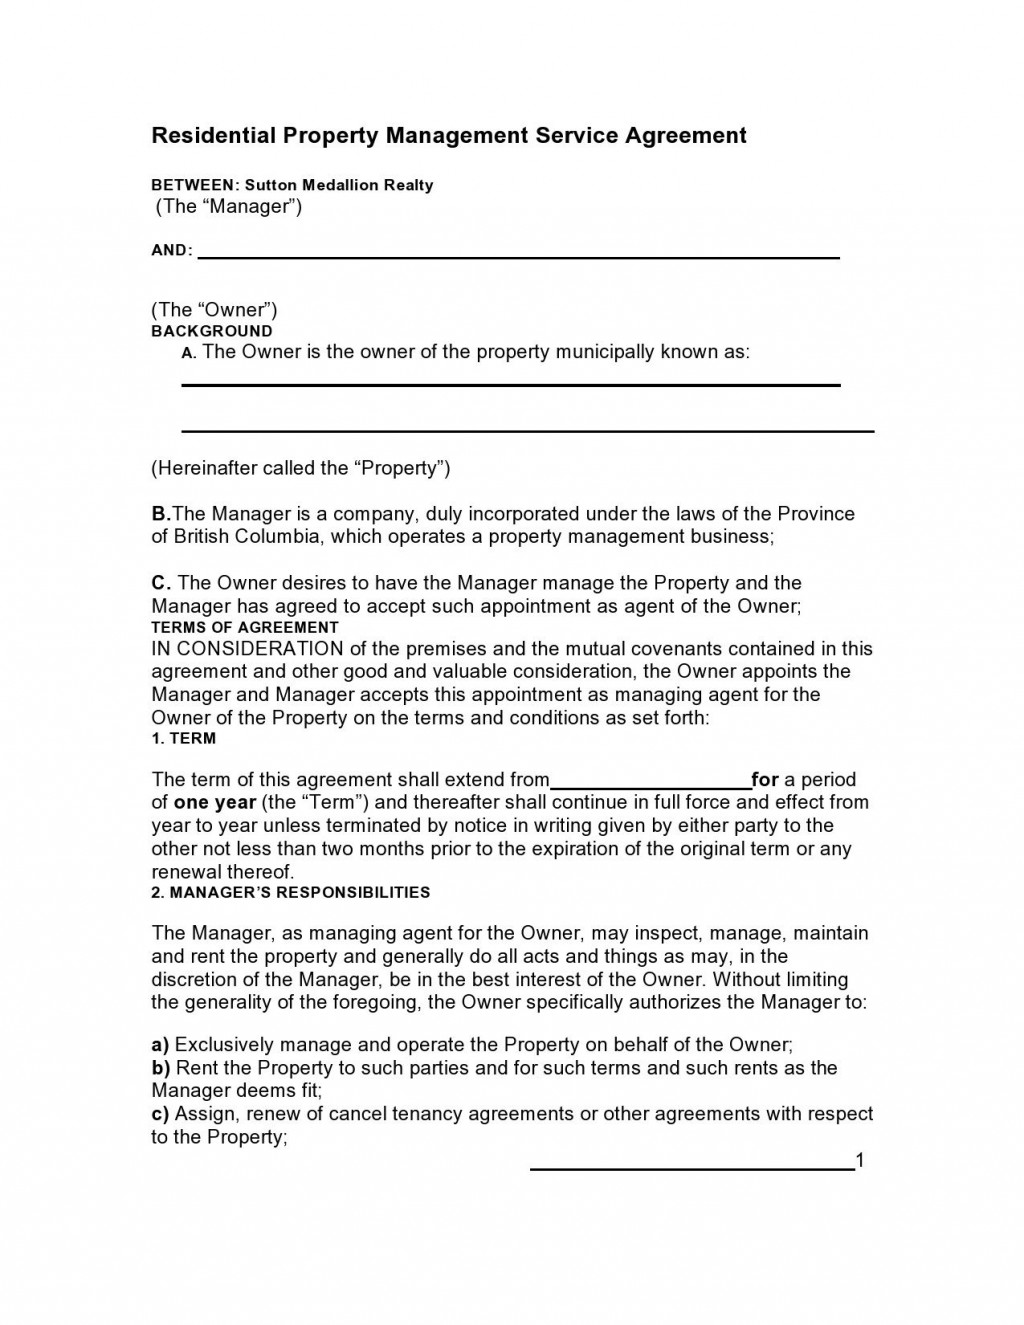 007 Top Property Management Contract Template Uk Sample  Free Agreement CommercialLarge